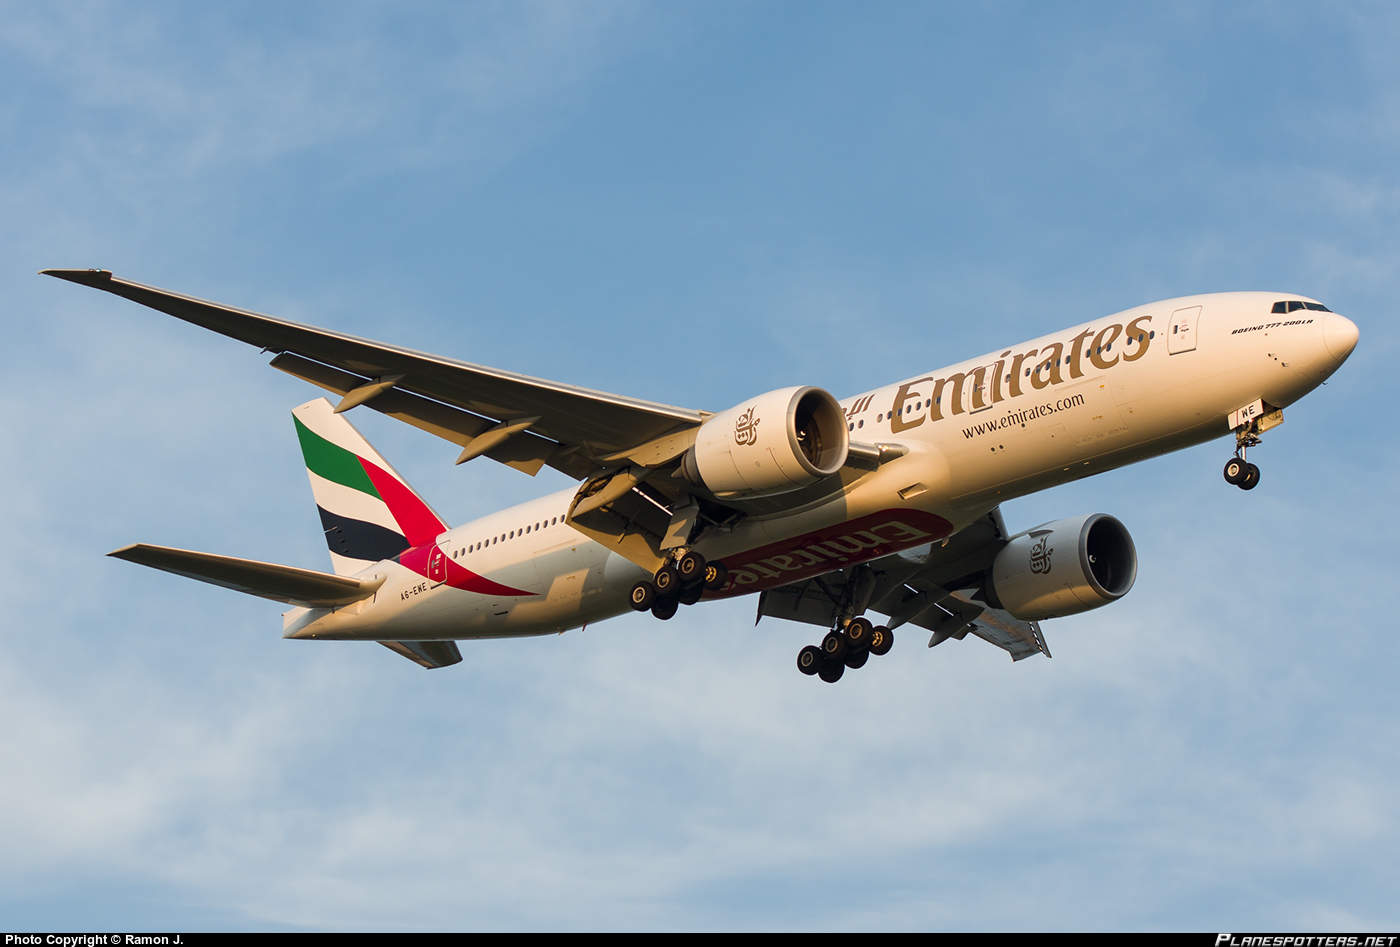 Emirates expands with two new cities in PRC